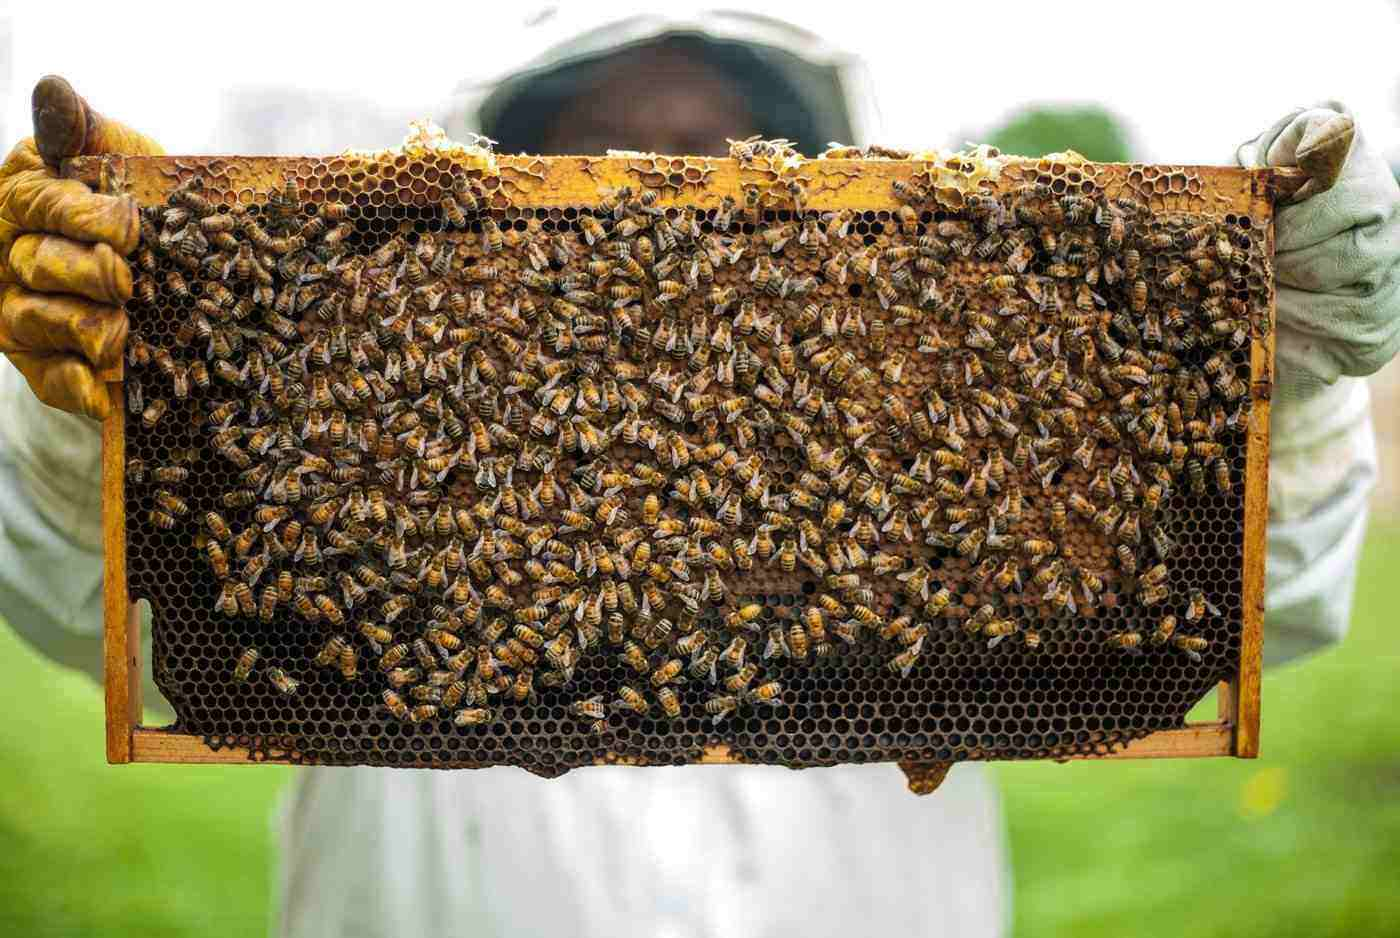 beekeeper and bees - the pros and cons of backyard beekeeping